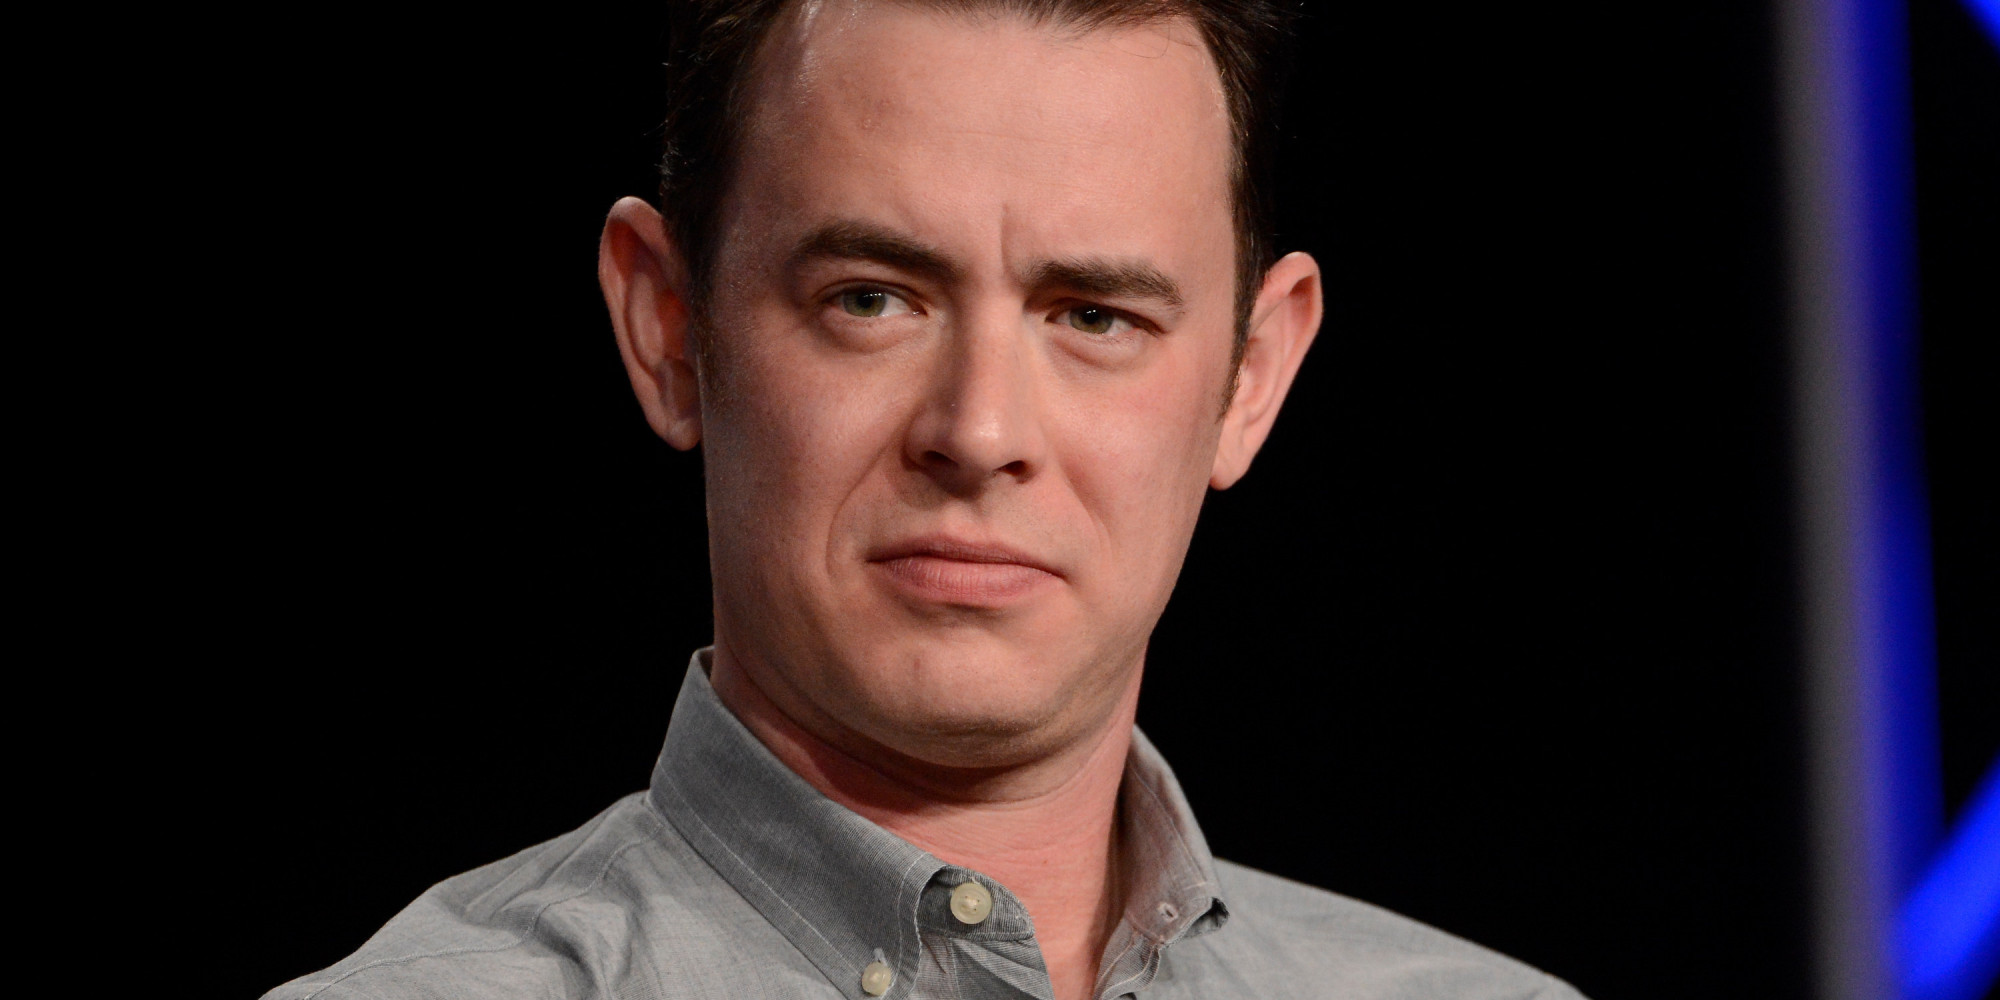 Colin hanks gives calgary winters the cold shoulder